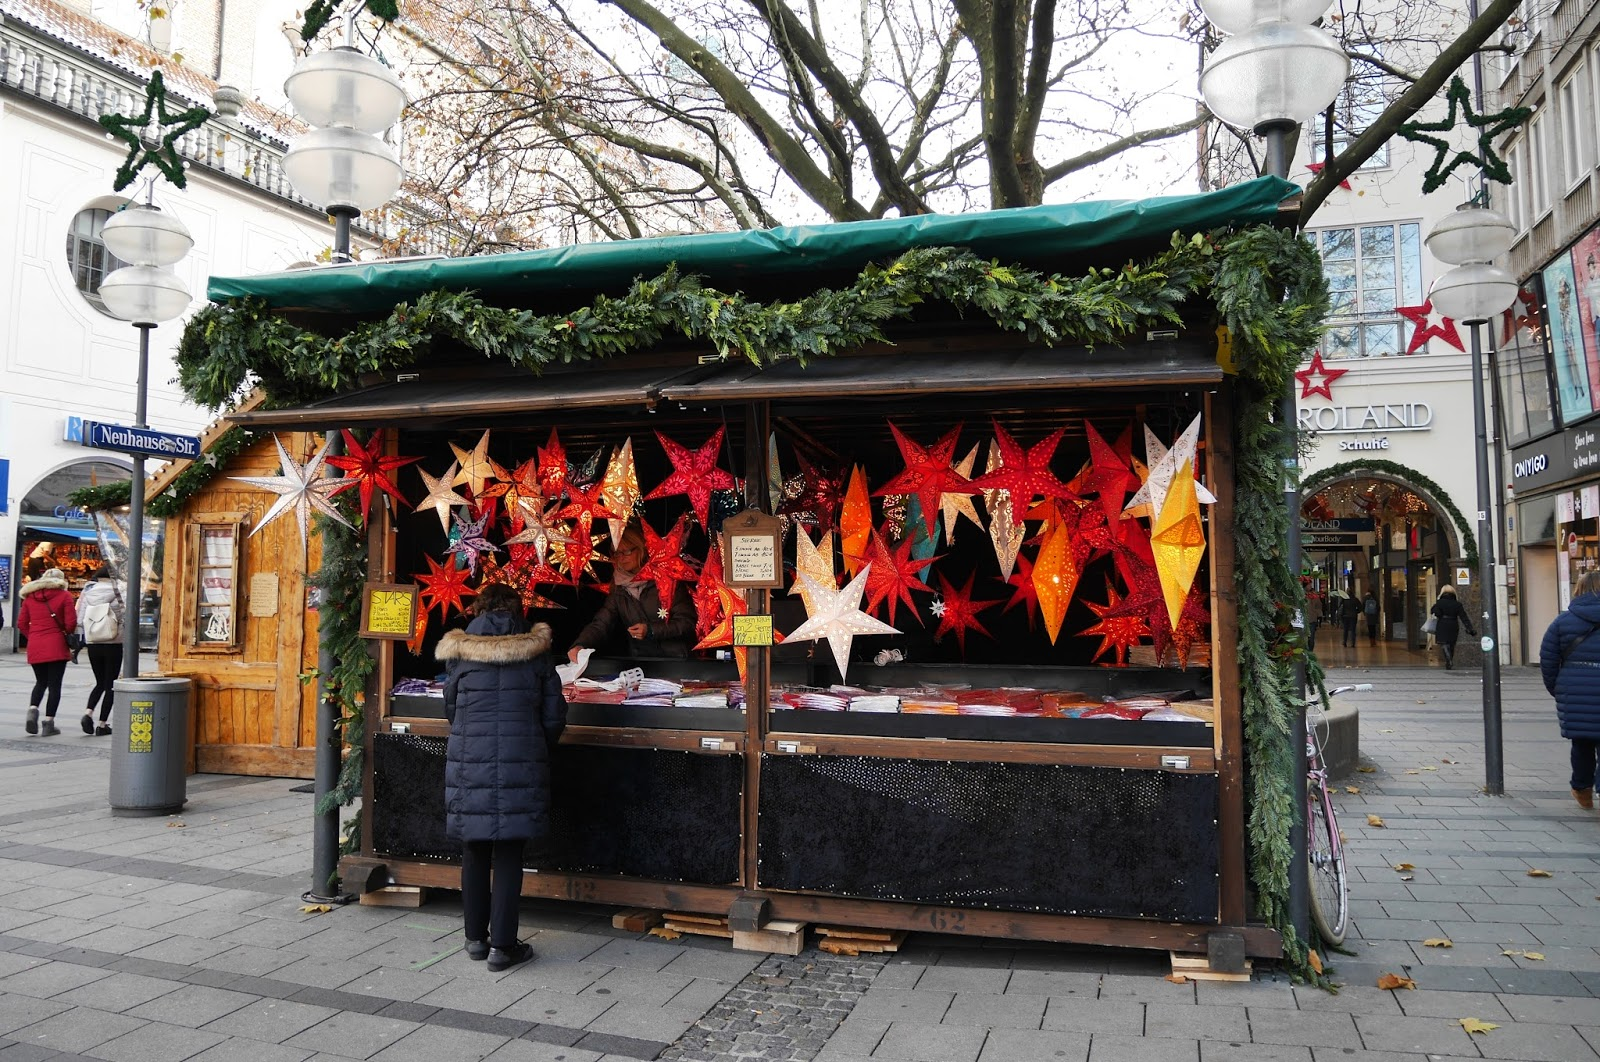 A souvenir stall at the Munich Christmas Markets